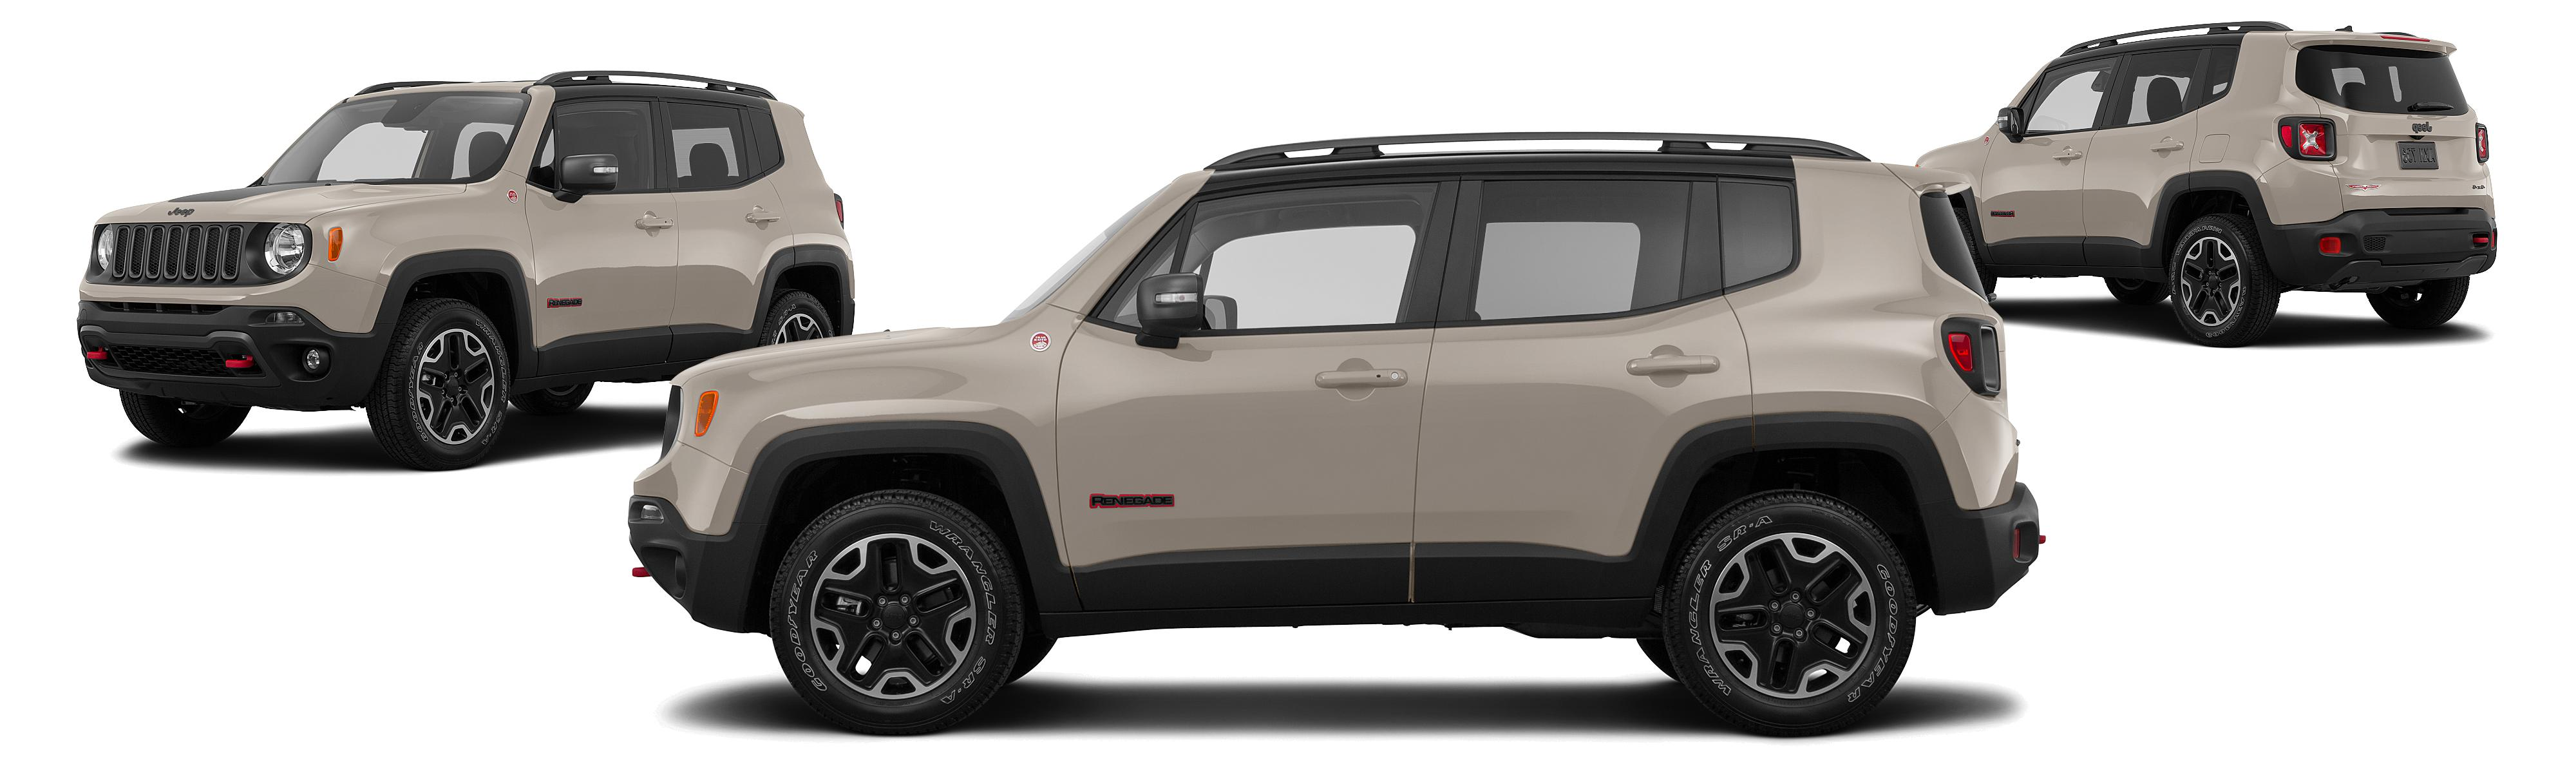 100 New Jeep Renegade Lifted